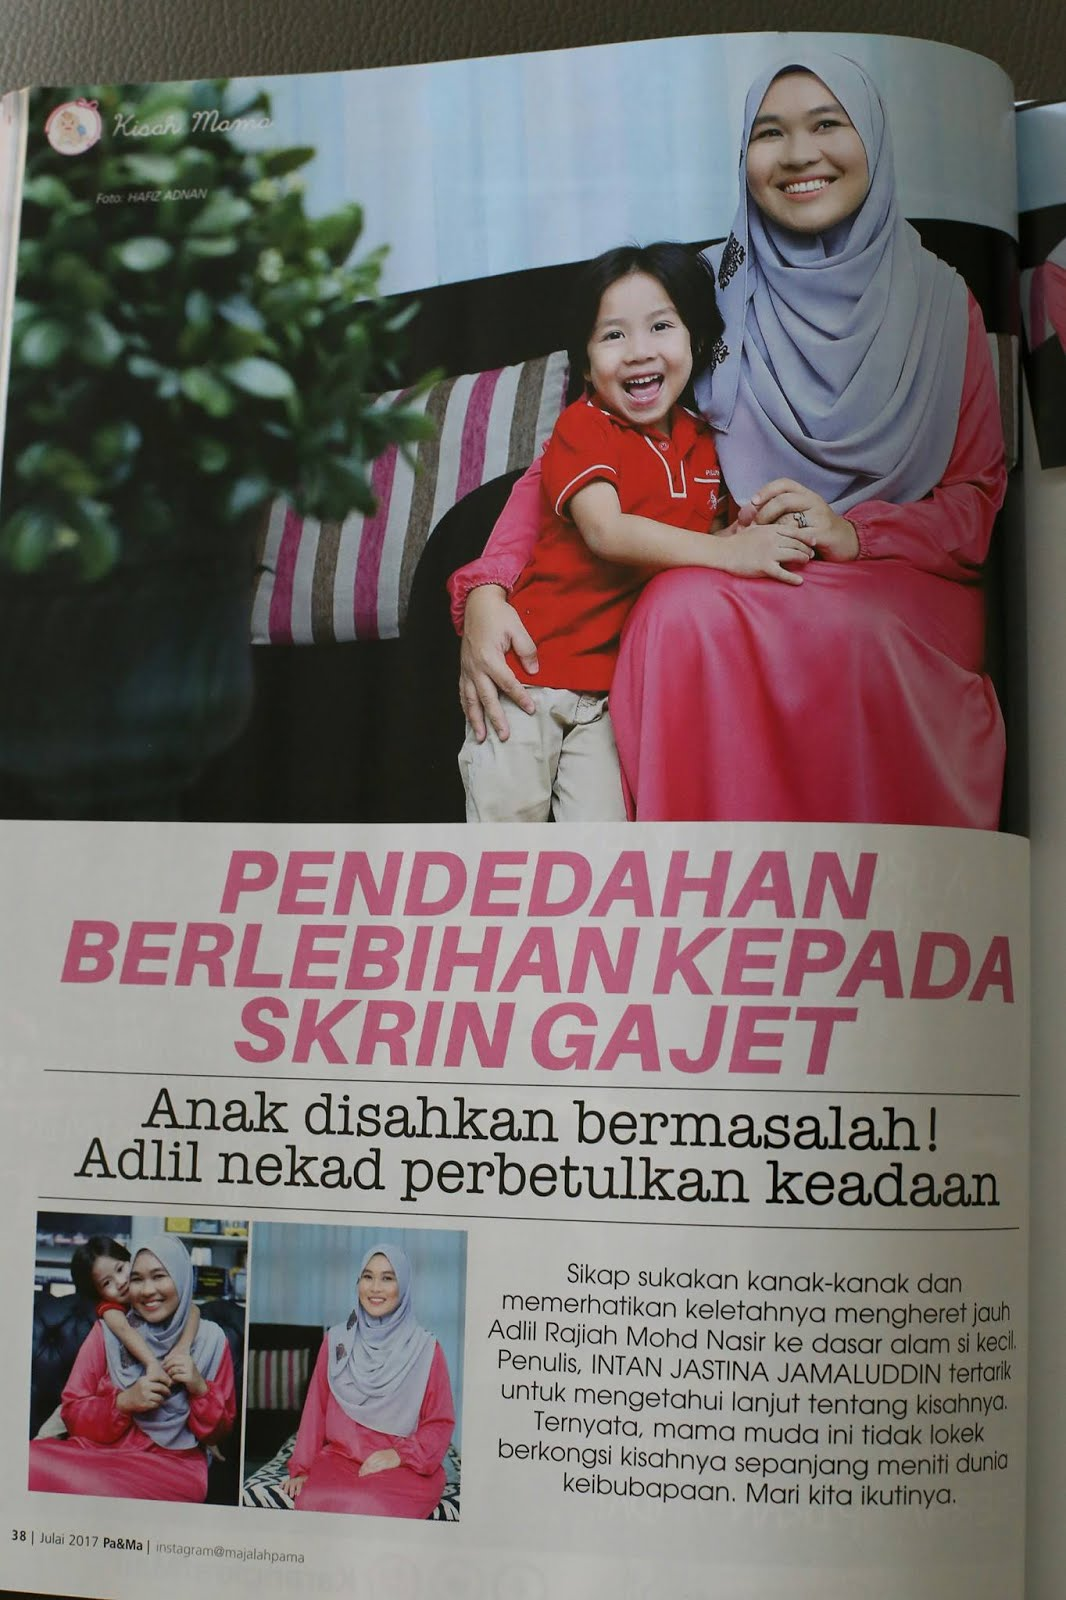 Featured in Majalah PA&MA. (10/7/2017)